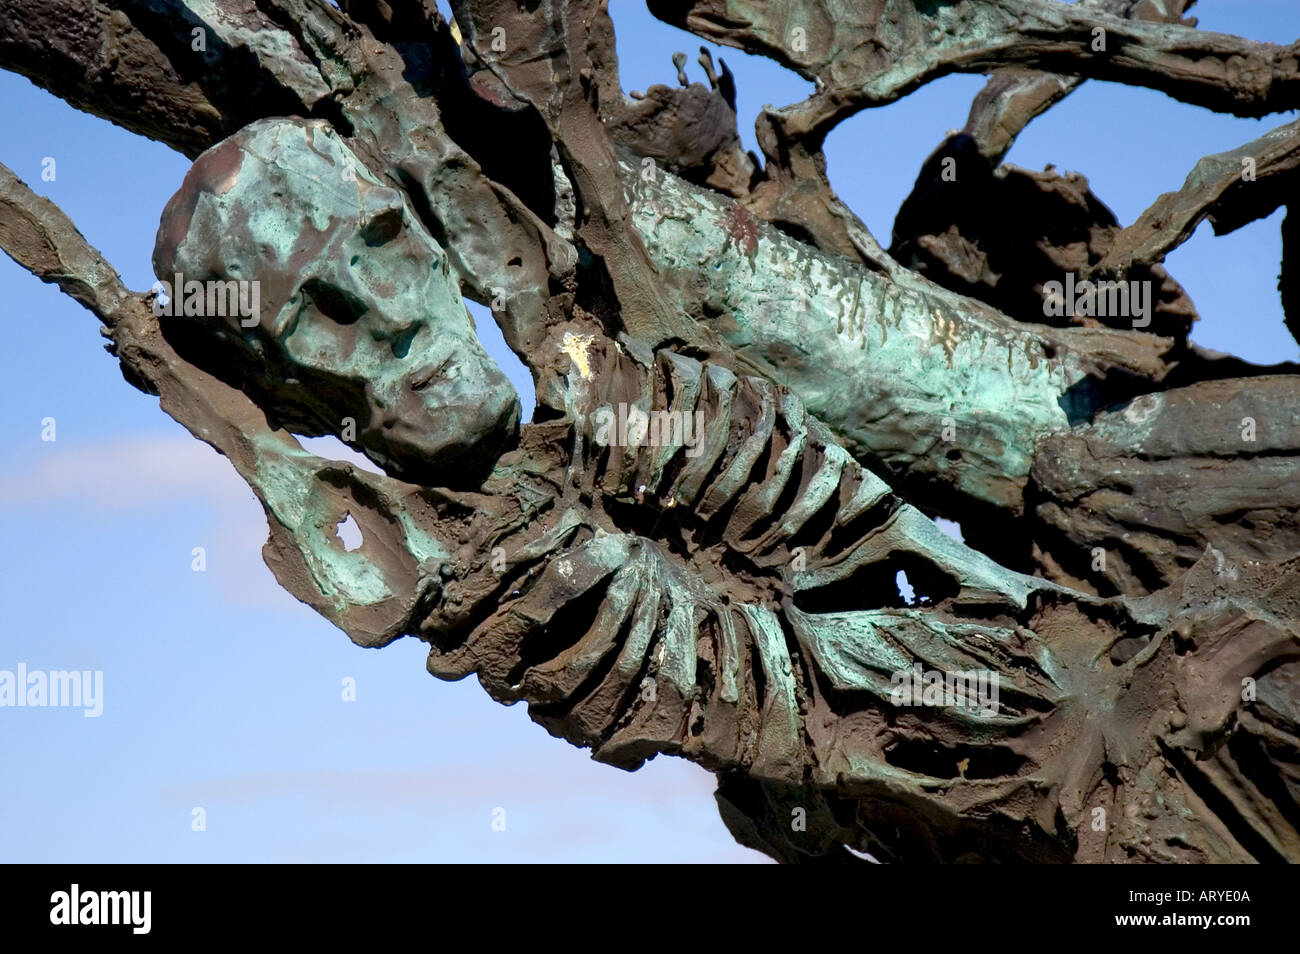 Detail of Famine Memorial sculpture Murrisk Co Mayo - Stock Image